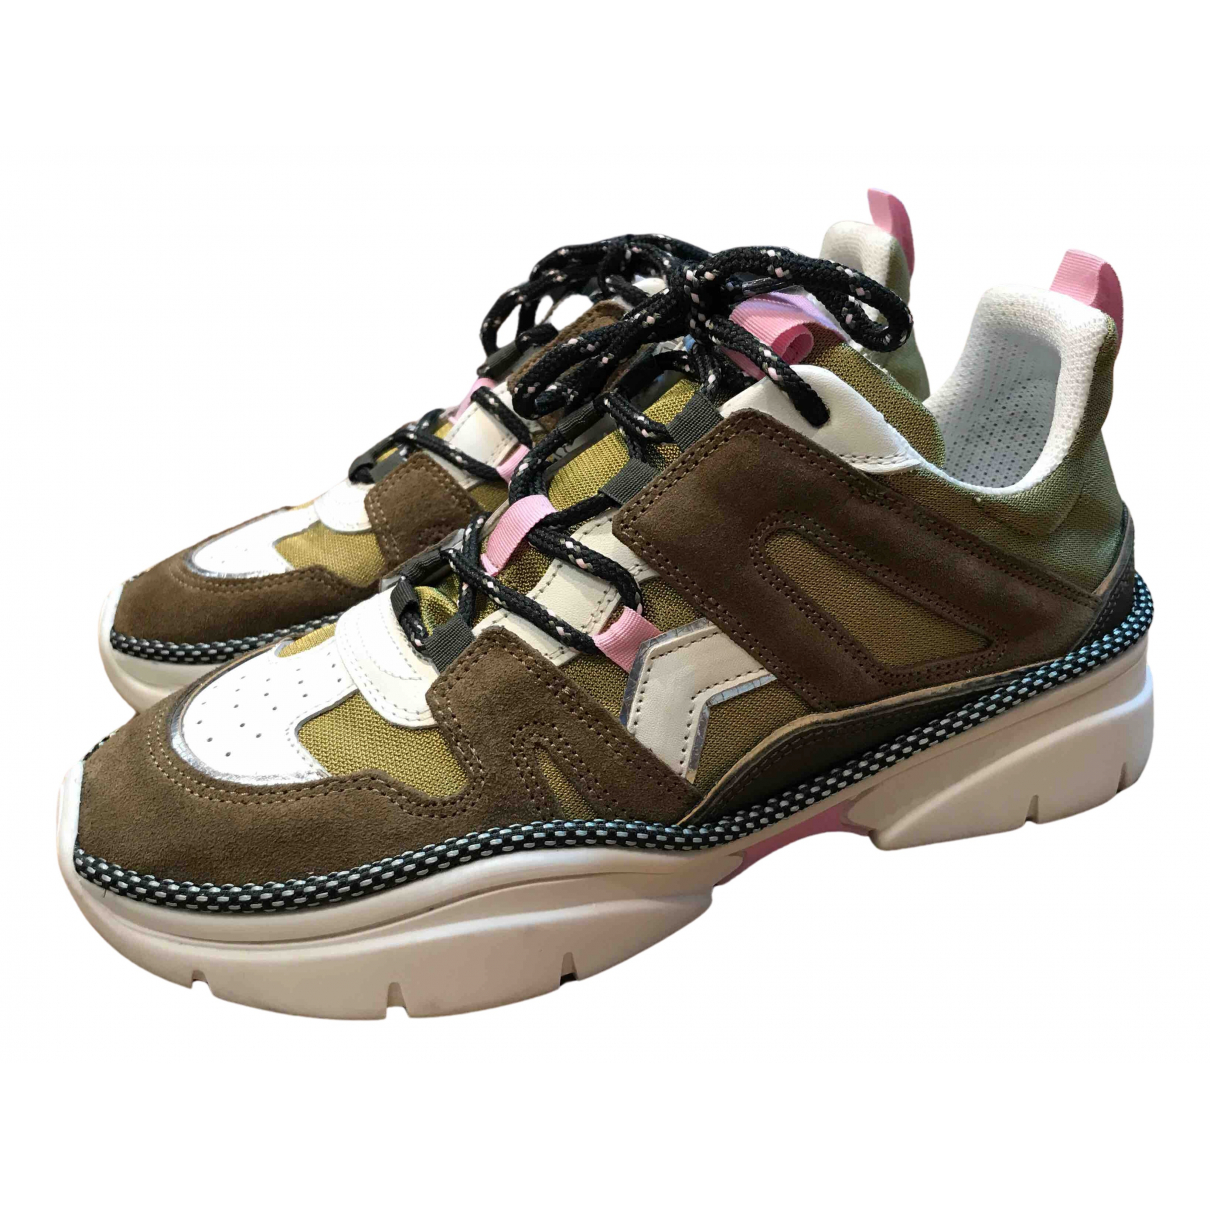 Isabel Marant N Multicolour Leather Trainers for Women 38 EU